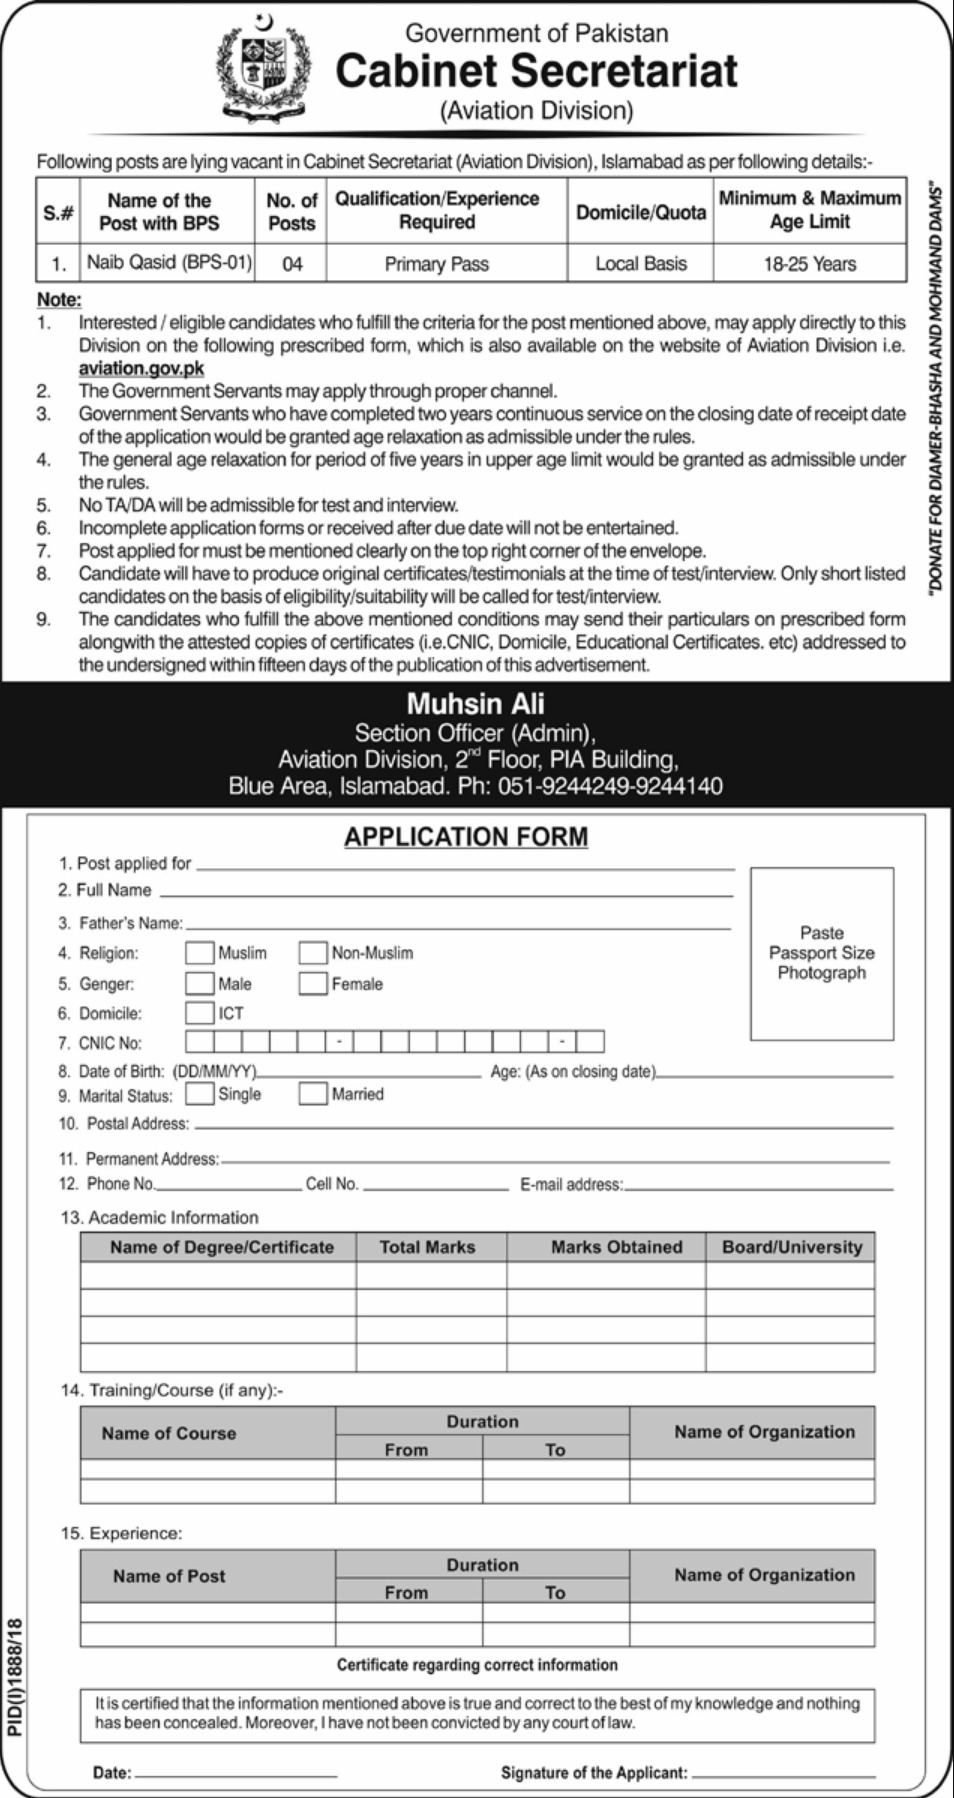 Govt of Pakistan Cabinet Secretariat Jobs Latest 2018